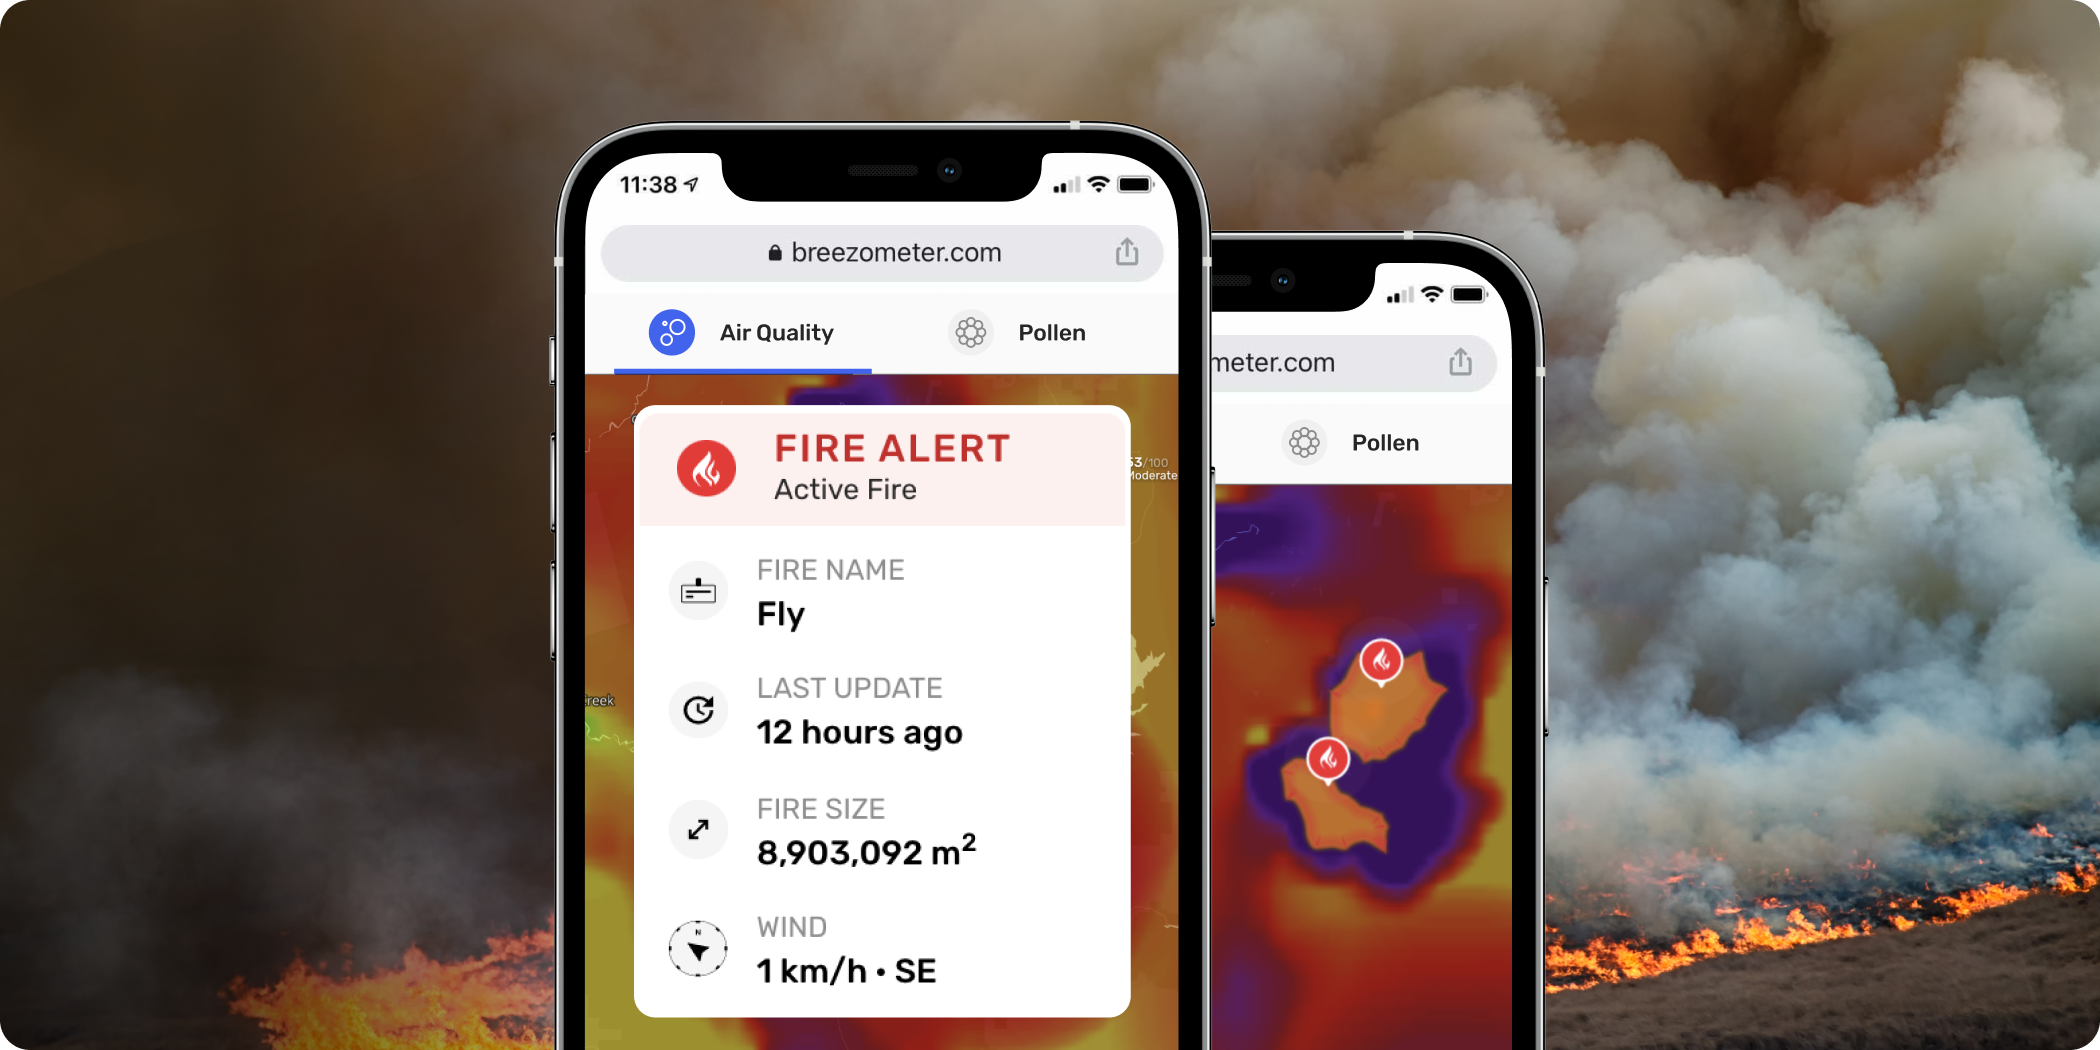 BreezoMeter's New Live Wildfire Tracking: Revolutionizing Fire Monitoring!